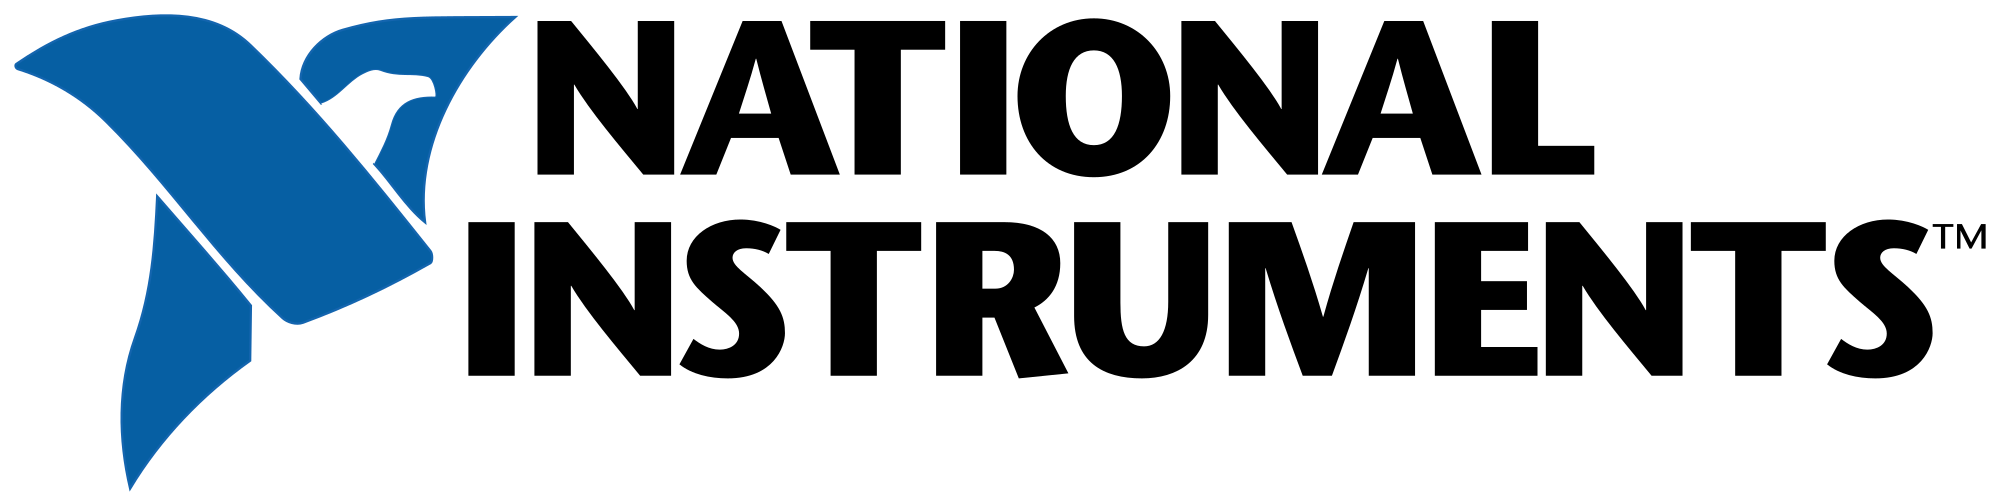 national-instruments-logo.png